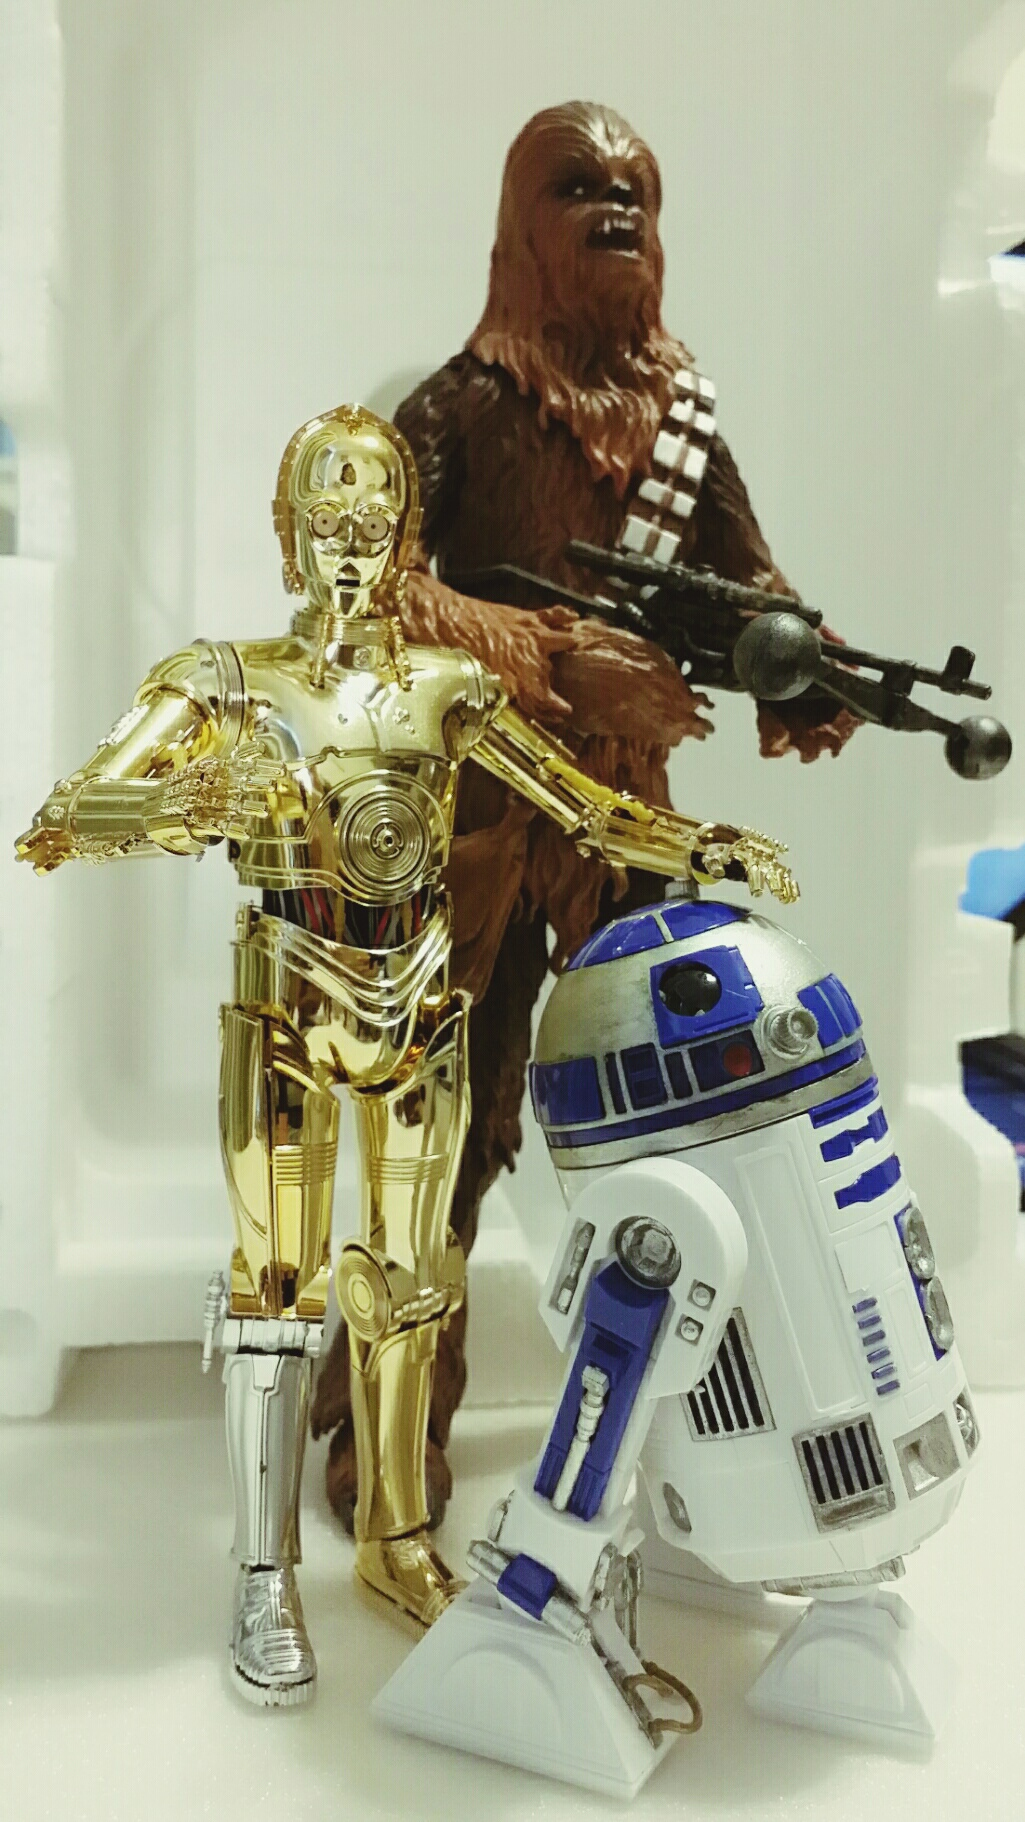 Bandai R2-D2 kit size comparisons against Hasbro's aThe Black Series figures